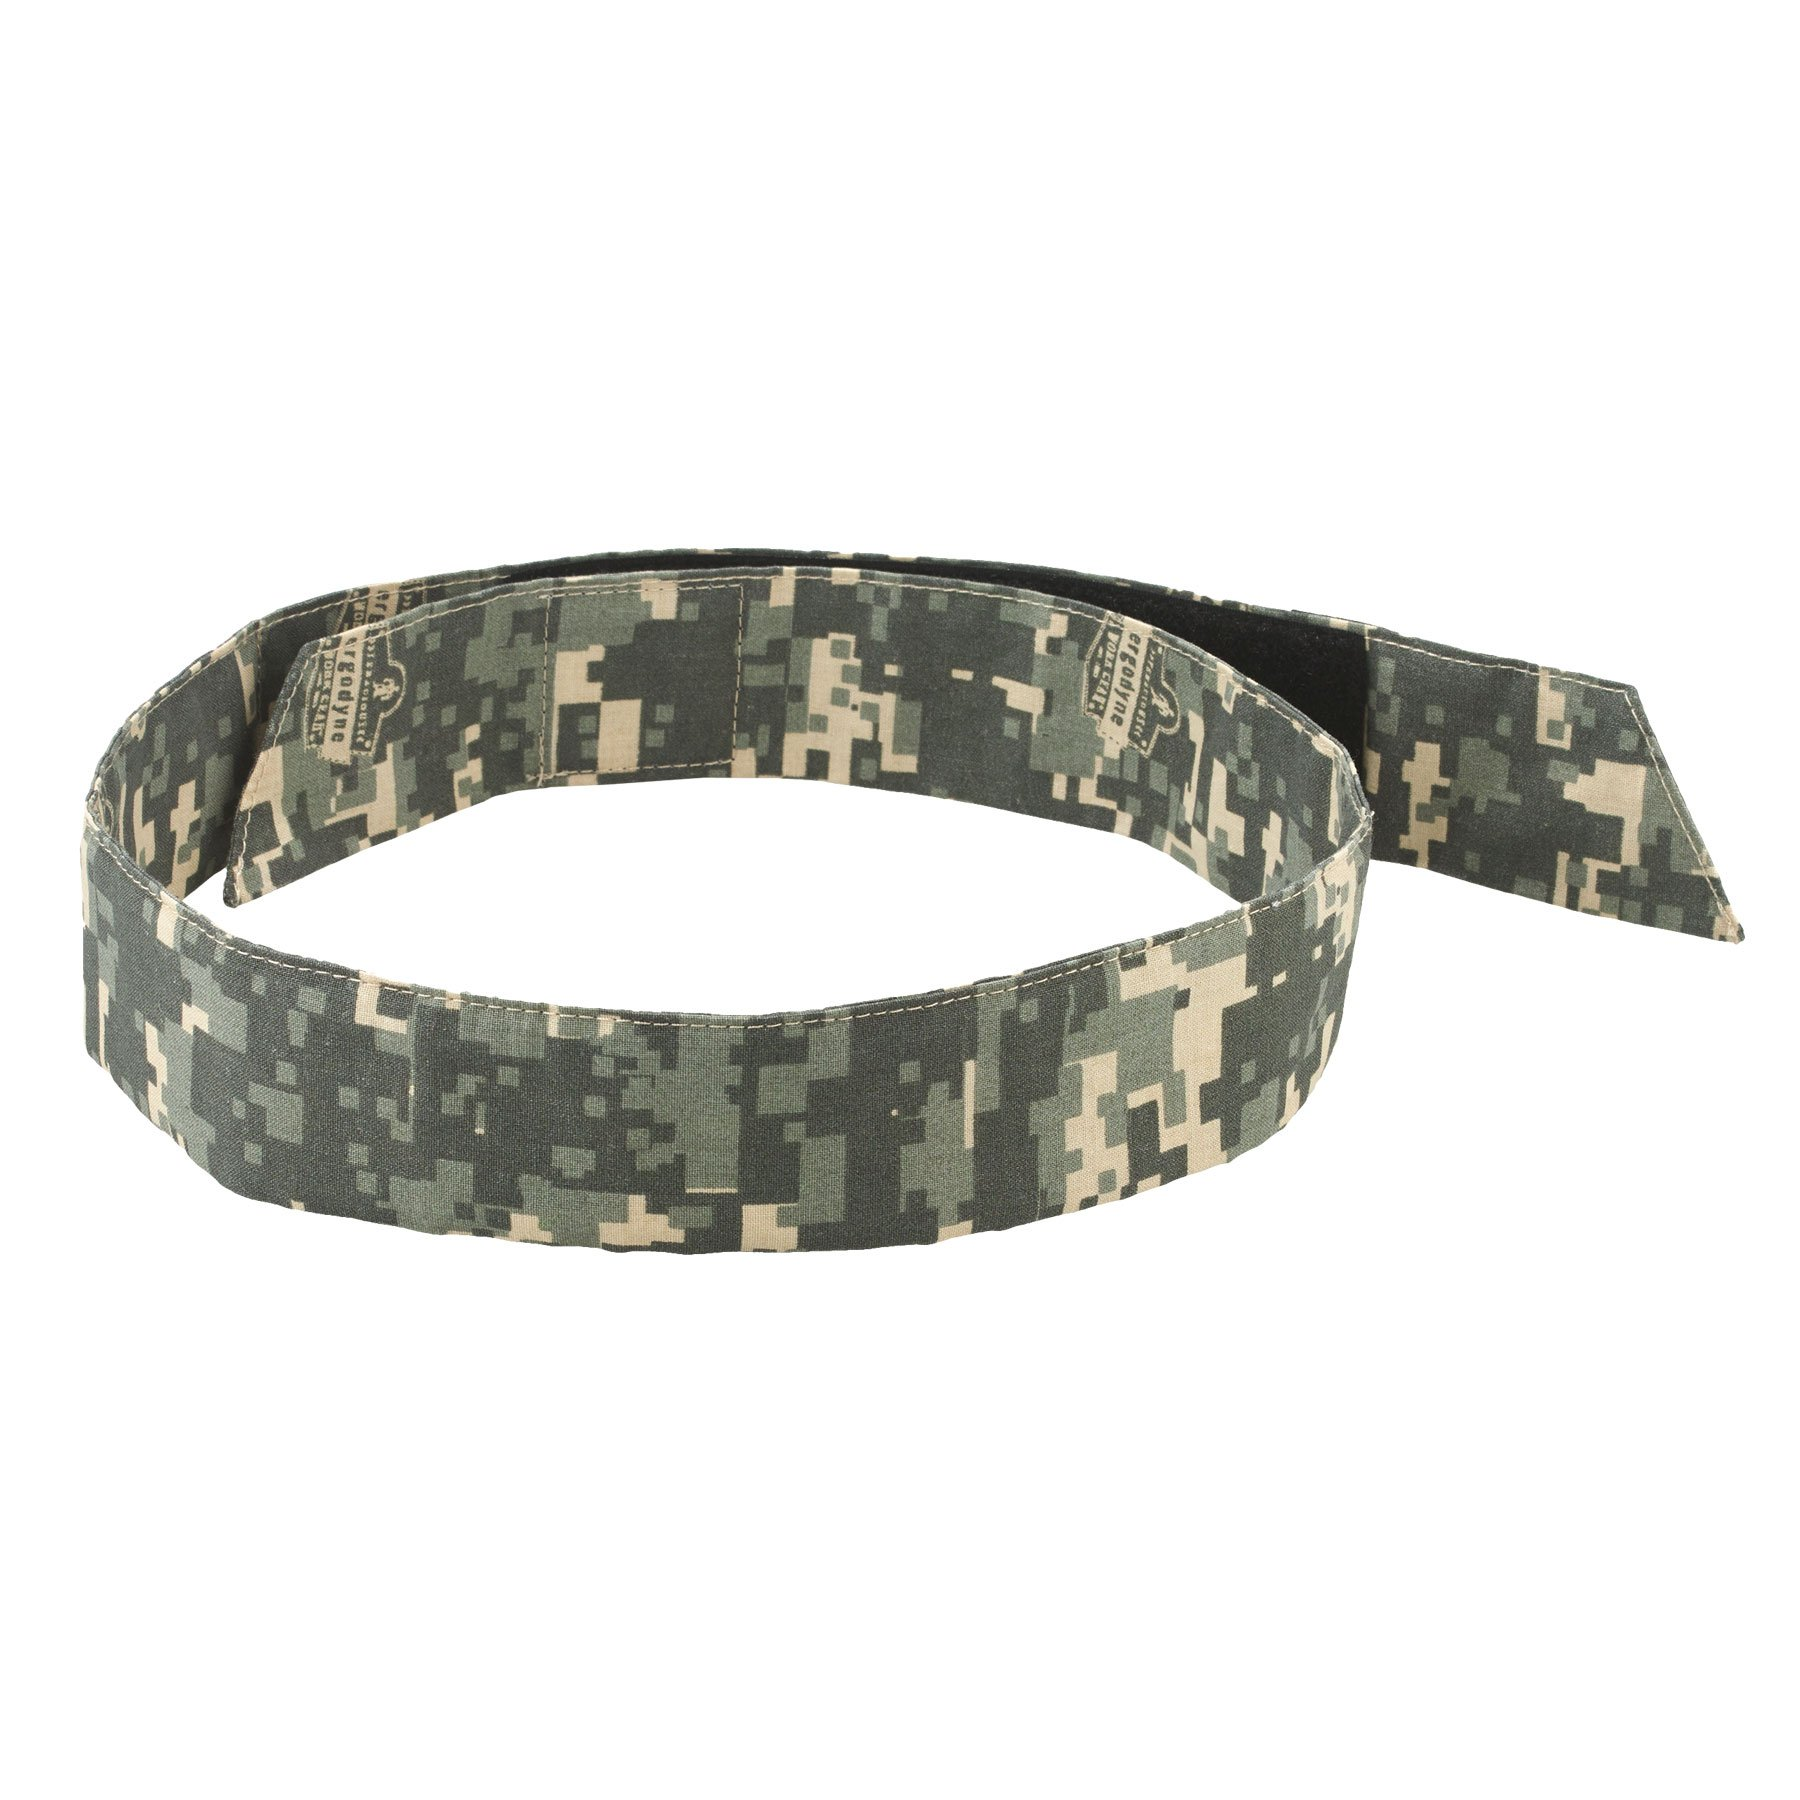 Ergodyne Chill-Its 6705 Evaporative Polymer Cooling Bandana - Hook & Loop Closure, Camo by Ergodyne (Image #1)